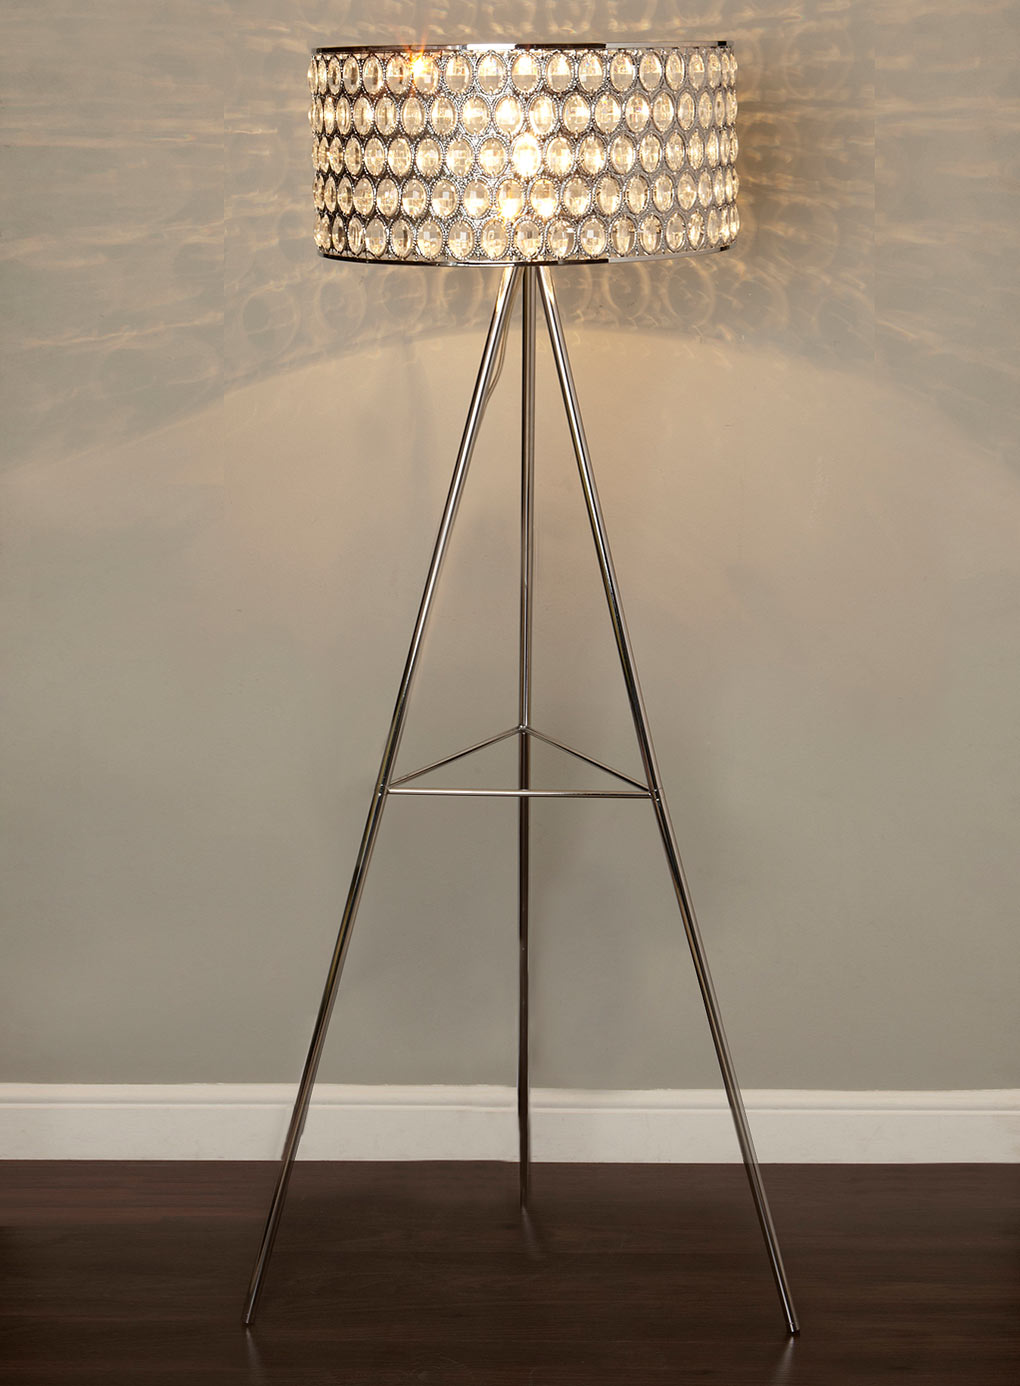 Studio Tripod Floor Lamp | Swing Arm Floor Lamps | Tripod Lamp